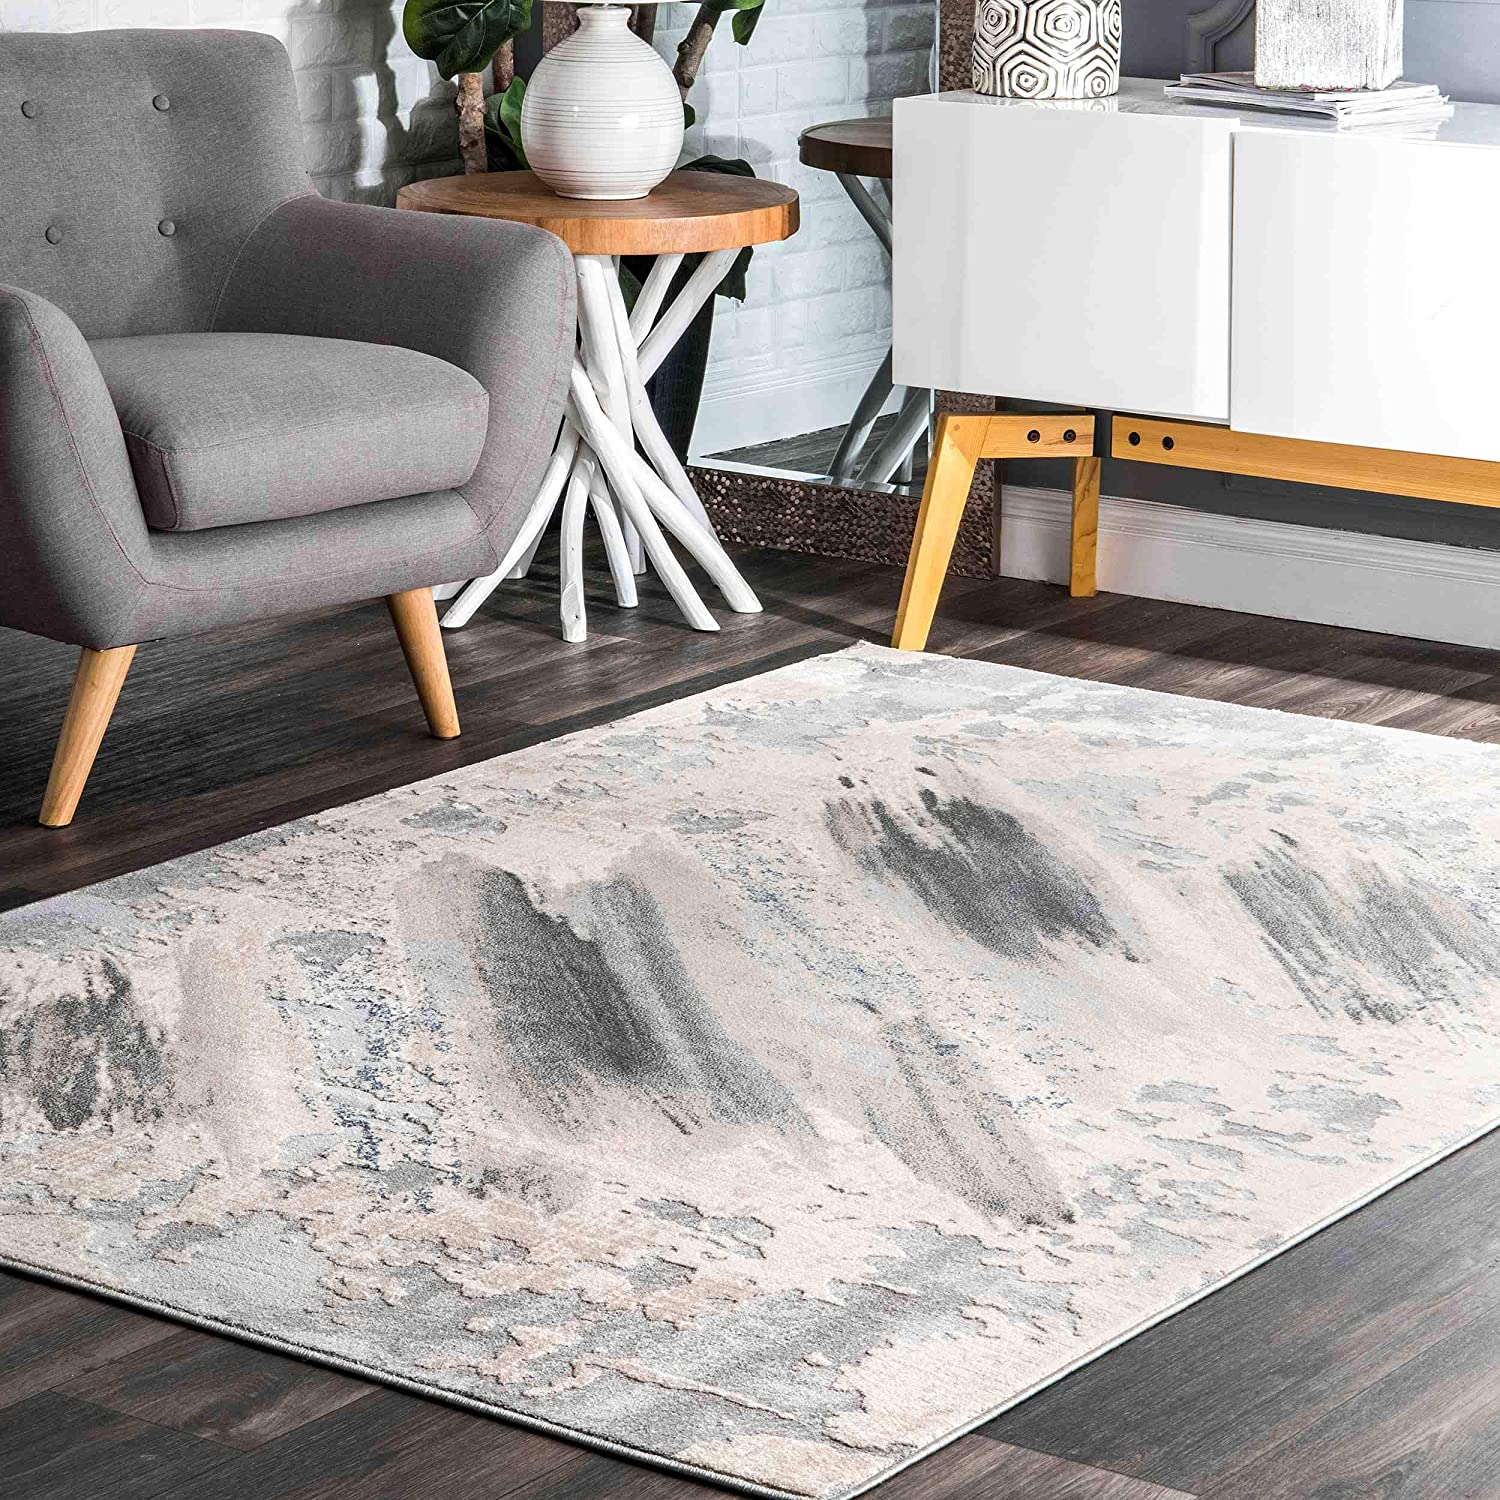 nuLOOM New York Mall Chroma Abstract Area Rug x Discount is also underway 9' Grey 6' 7